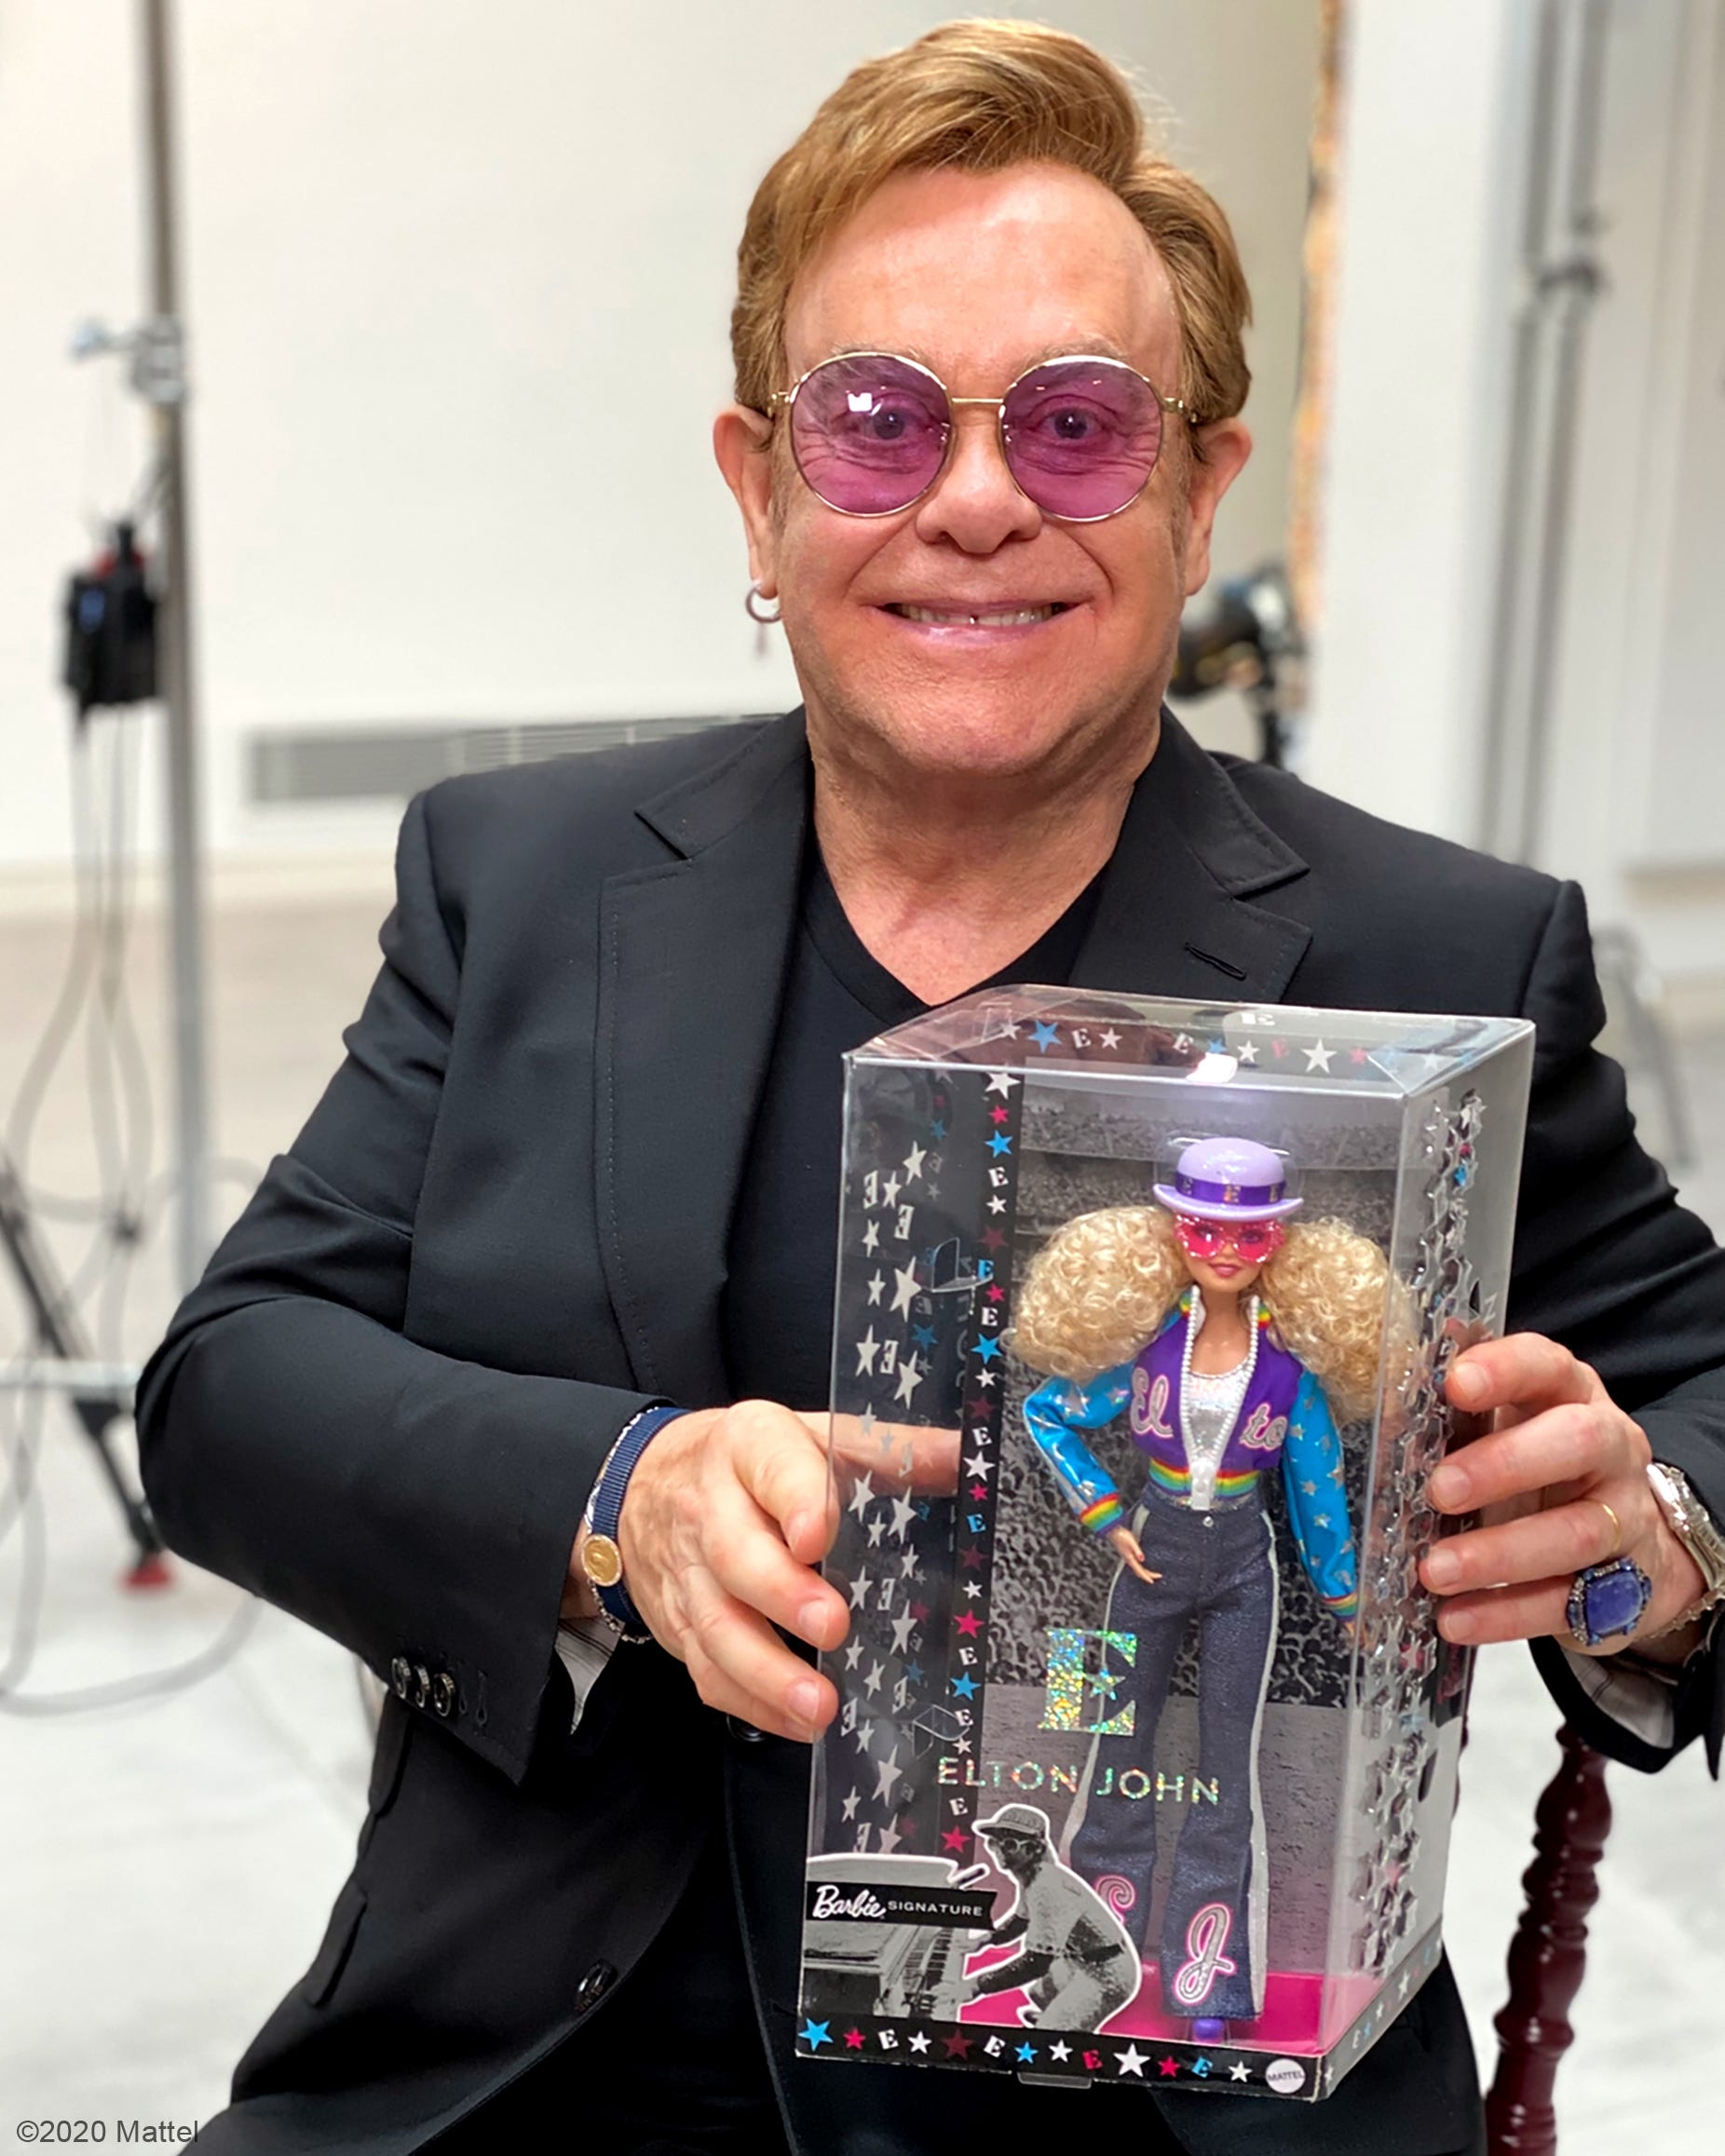 Elton John and his own Barbie Doll